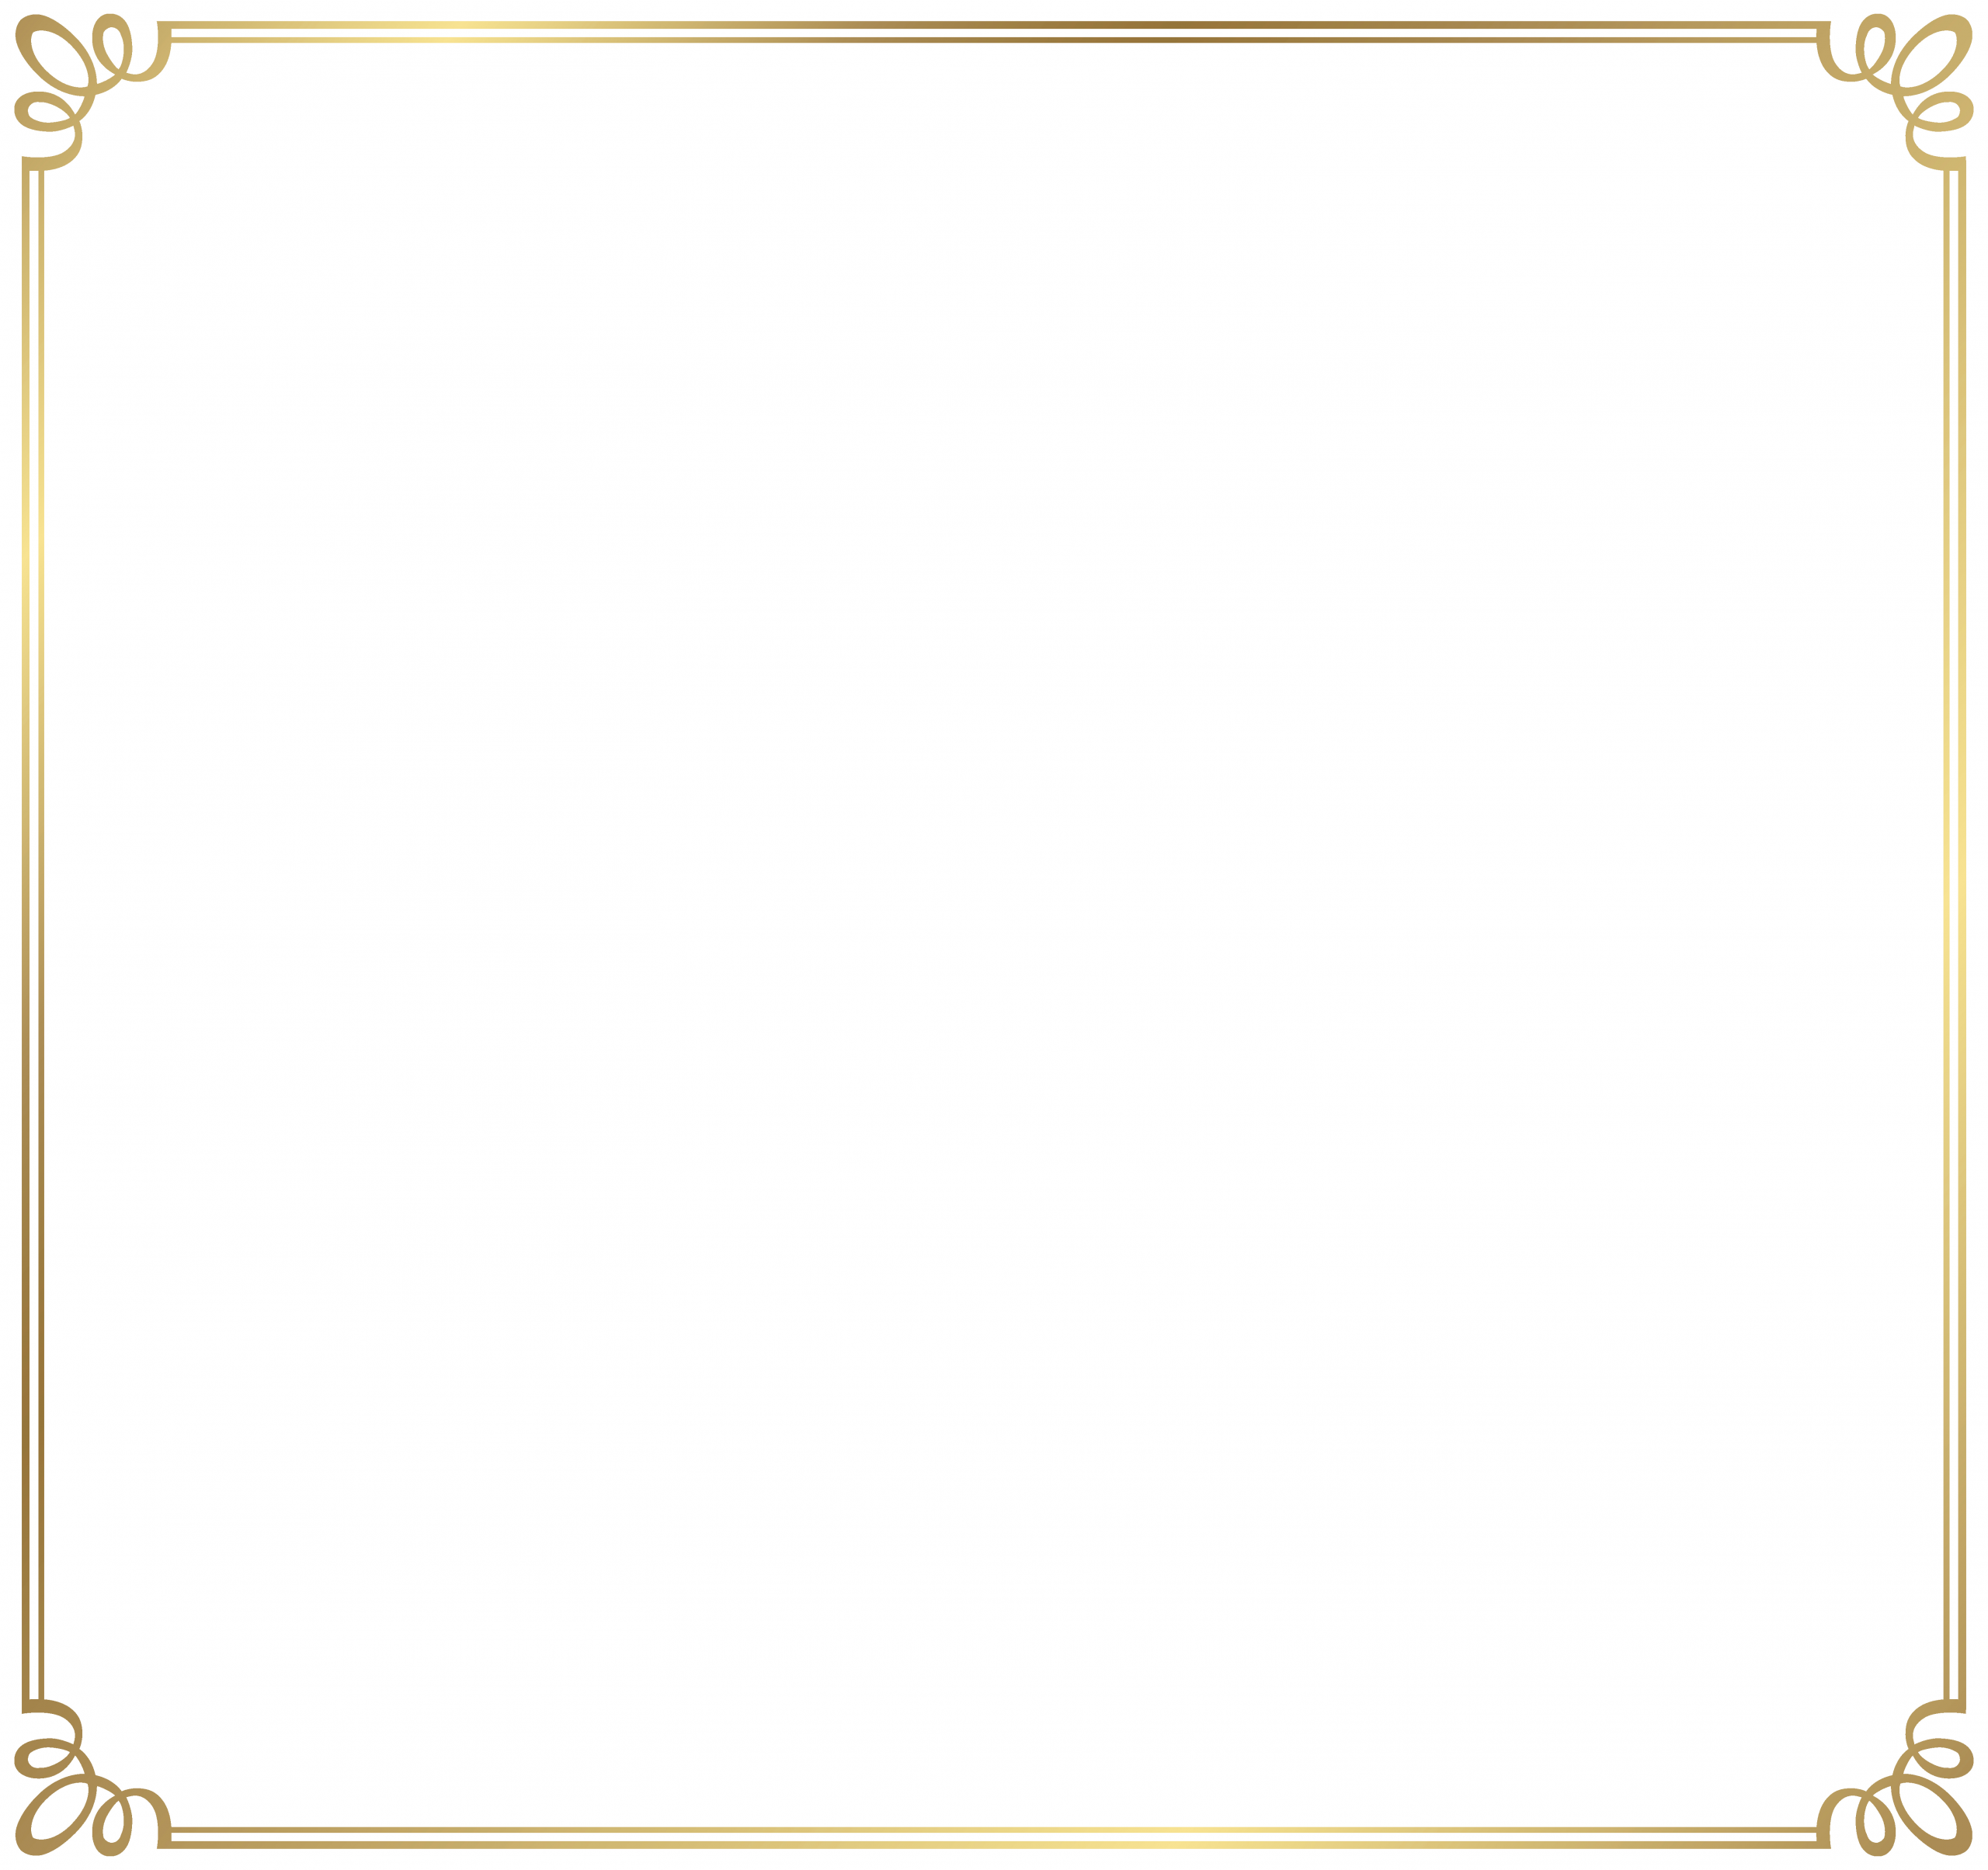 Certificate Border Design Png Awesome Fun Frame Clipart Png 20 Free Cliparts